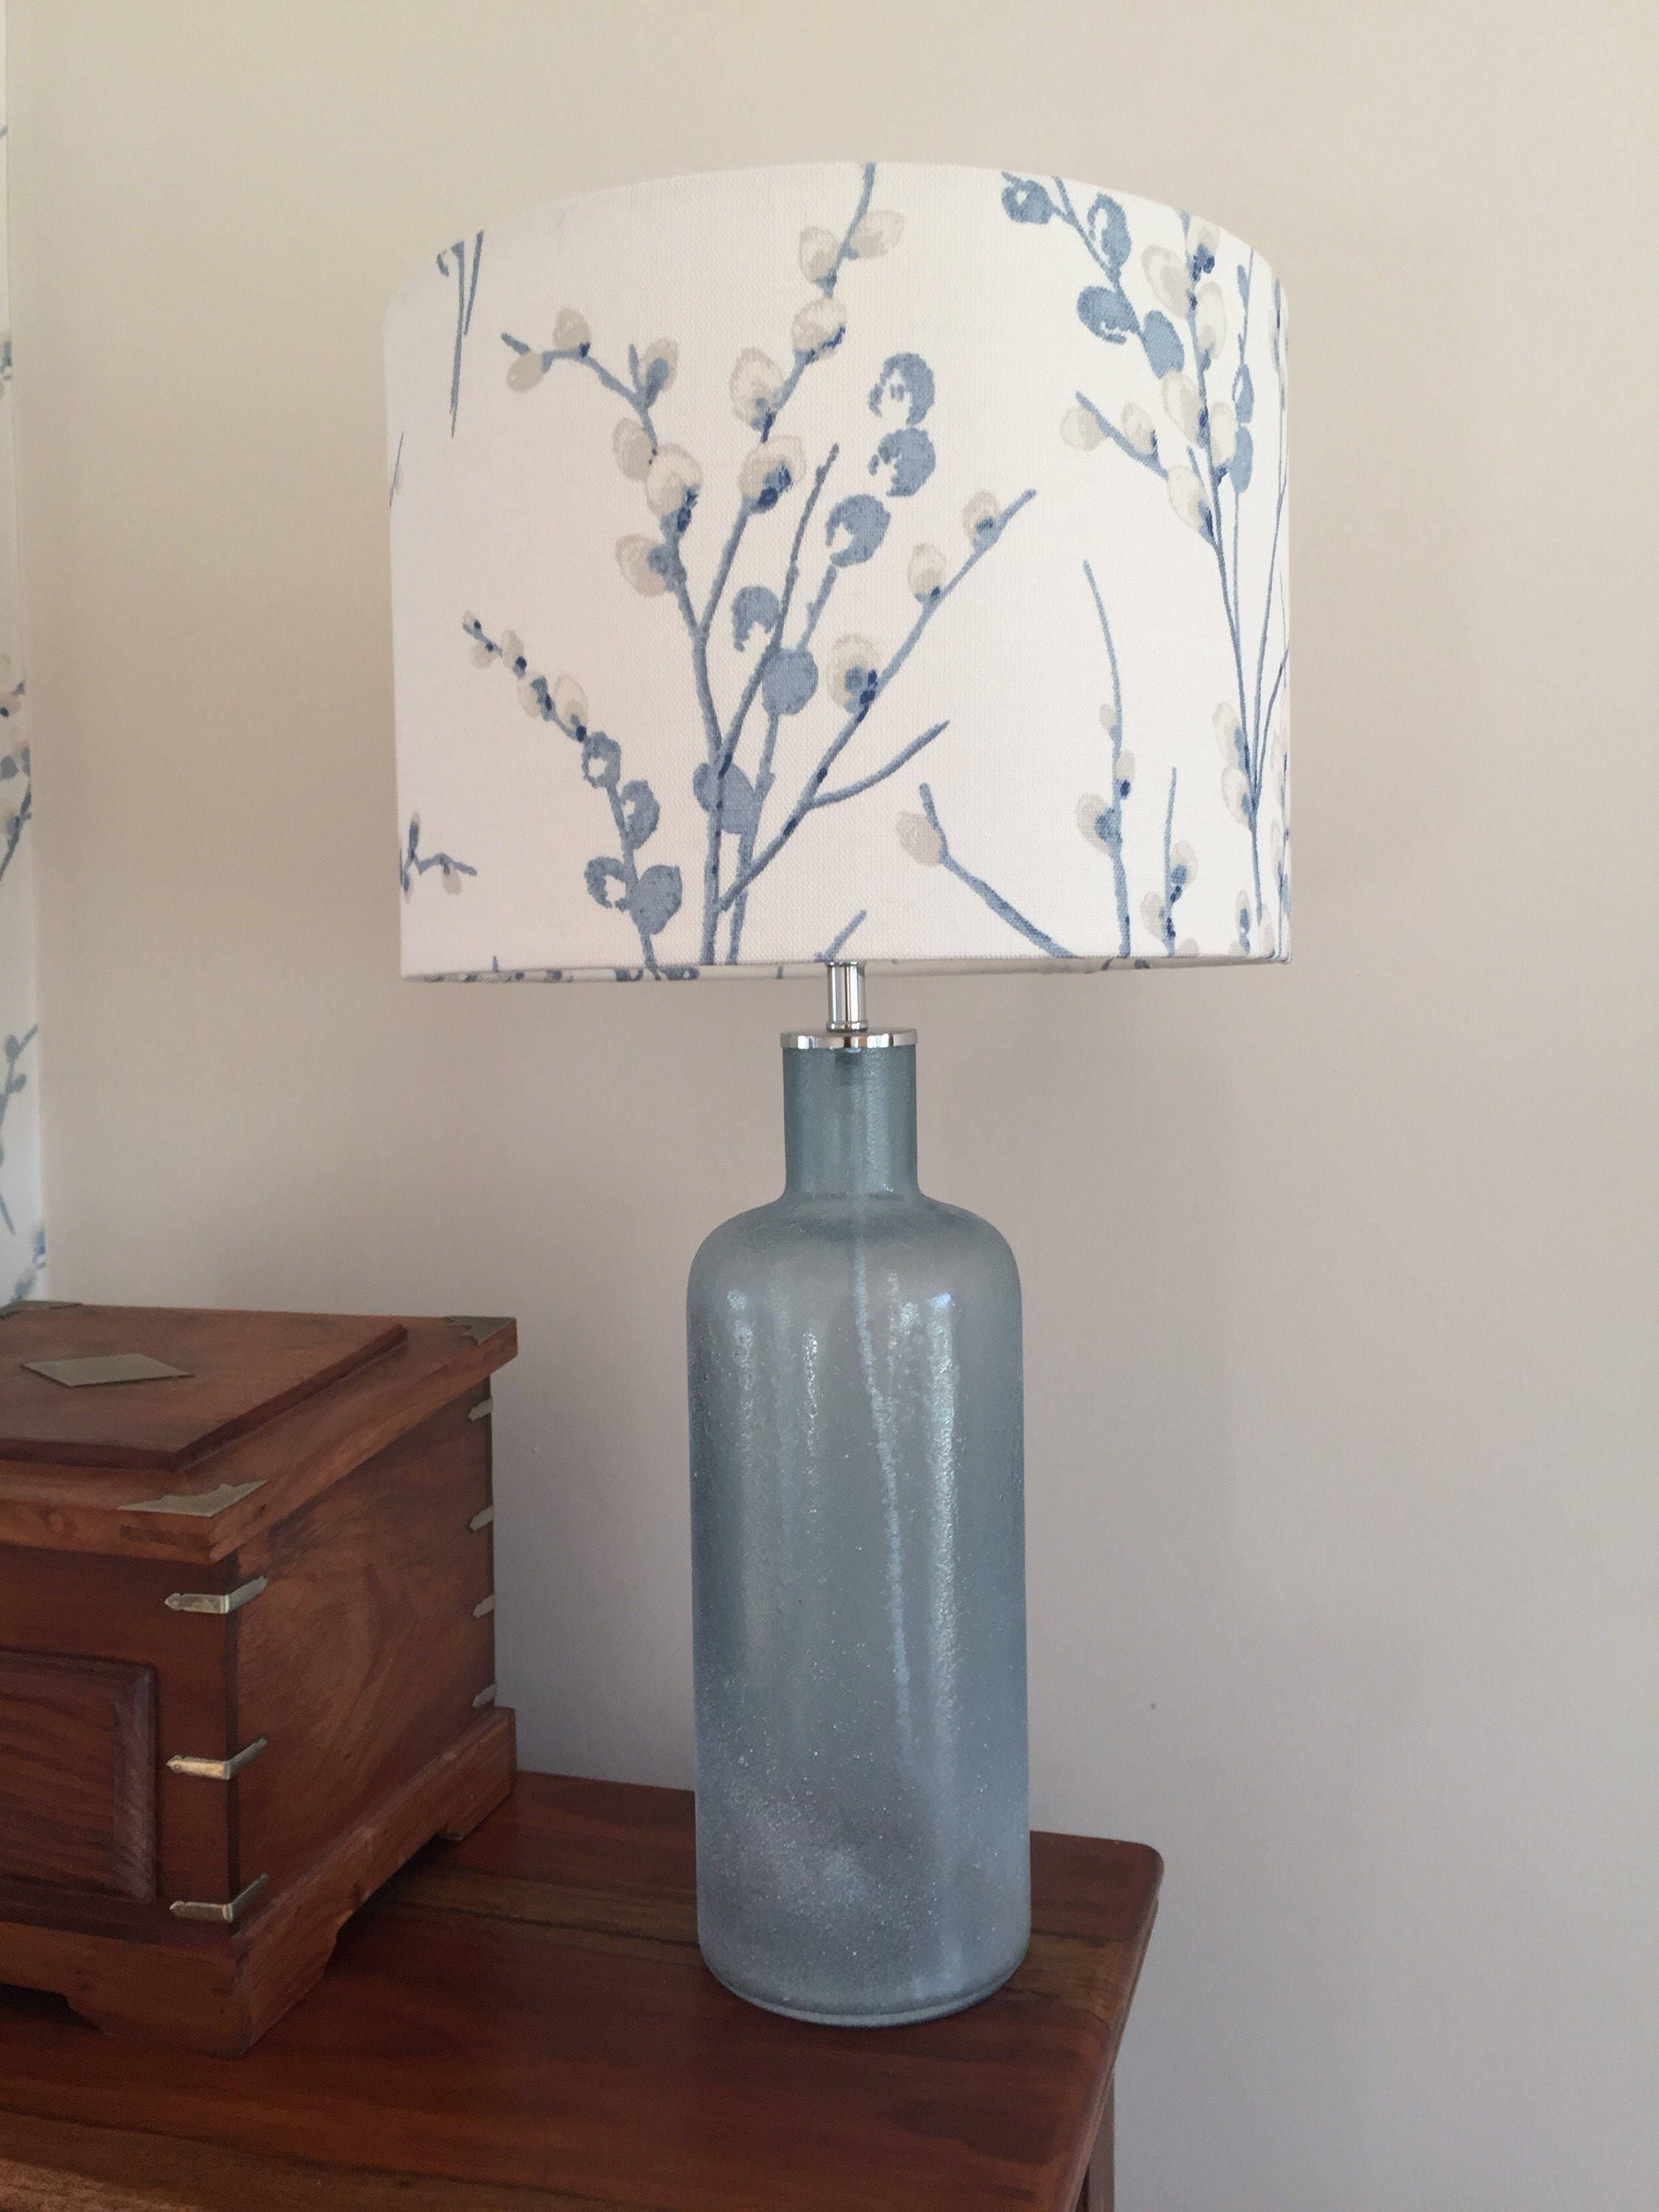 Lampshade Home Decor Table Lamp Floor Lighting Floral Shabby Chic Blue Laura Ashley Pussy Willow OW Seaspray